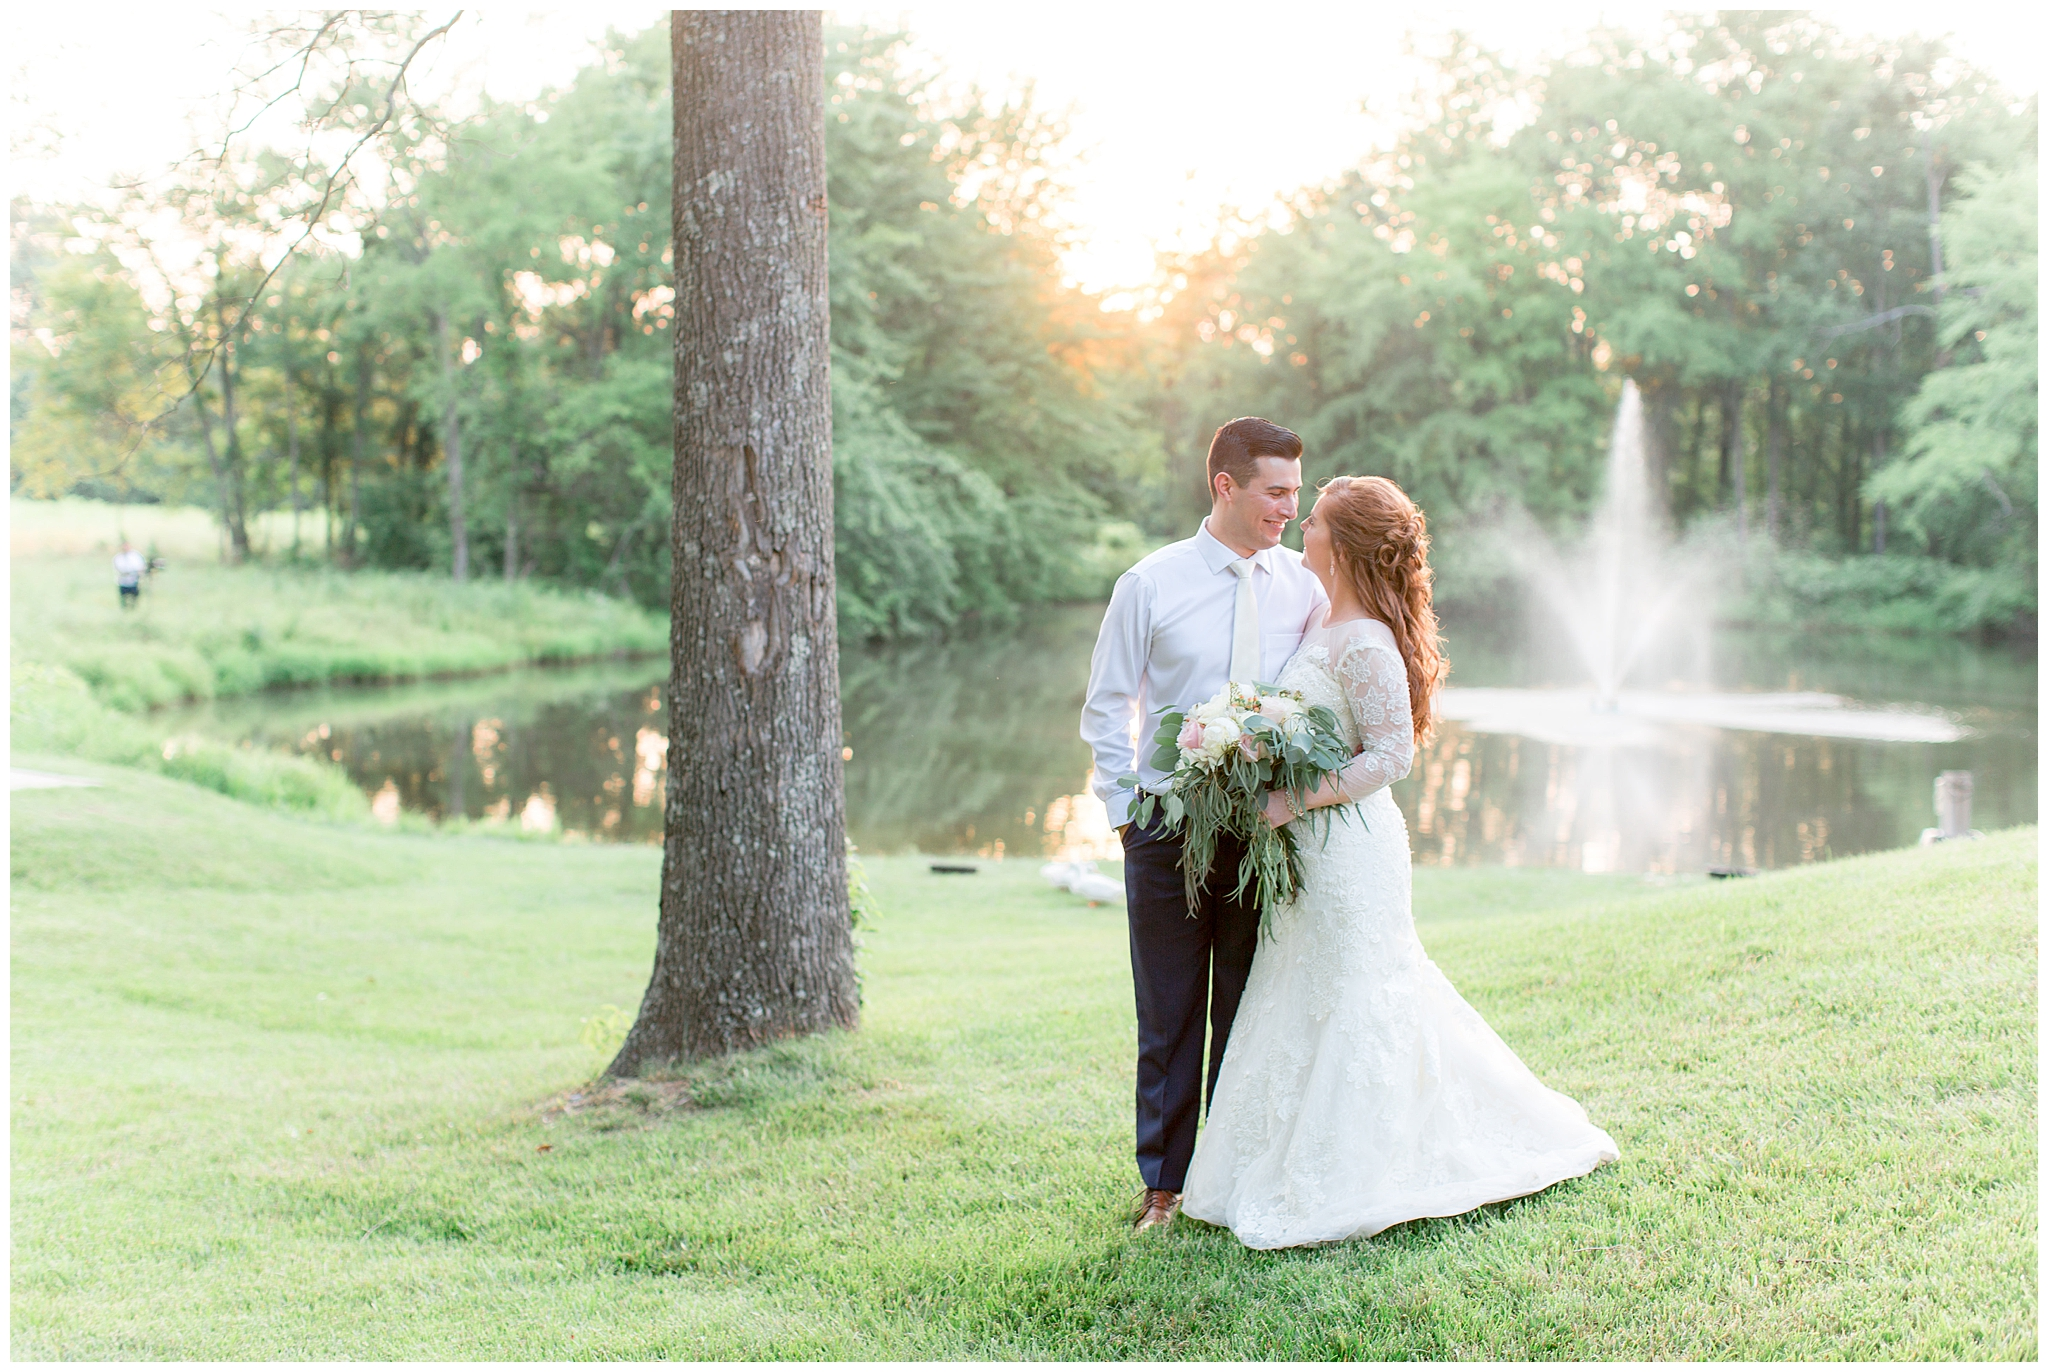 "Trey and Leslie Schweitzer had a sunny, daytime wedding on June 6, 2018. Burdoc Farms had a beautiful gazebo for the ceremony and The Keith Glen, a beautiful new addition to Burdoc Farms. The venue is in the woods by a pond with a lighted fountain, surrounded by fields and forest. With a more modern look and feel you can still enjoy the natural beauty of Burdoc Farms because of the wall of glass that faces the pond and woods. Chandeliers, a copper bar top, natural wood farm tables and natural stone fireplace adds to the beauty of the building..  Leslie and Trey's engagement story was a part of a family tradition. During an annual Easter egg hunt, Regan, Leslie's dog, ran up to her with something shiny dangling off his collar. Trey kneeled and popped the question with all of Leslie's family watching, just the way she had always imagined!  Leslie's engagement ring is stunning, it's a marquise cut with circle emeralds on each side. Her wedding dress was from David's Bridal and is form fitting, with a sheer top and sleeves. The lace embellishments on the sleeves and her swept back half up-do gave her the perfect bridal look.  Every detail in their wedding was planned with such perfection! The bridal party helped decorate the cake with the cutest greenery and succulents. The ceremony arch was so elegant with white flowers and greenery strewn around it. Trey and Leslie stood under that arch holding in their hearts what they loved most about each other and said, ""We do!""  At the very end of the wedding, Trey and Leslie were able to have a short photo session with the sunset in the background sharing an intimate time after a hectic day!"